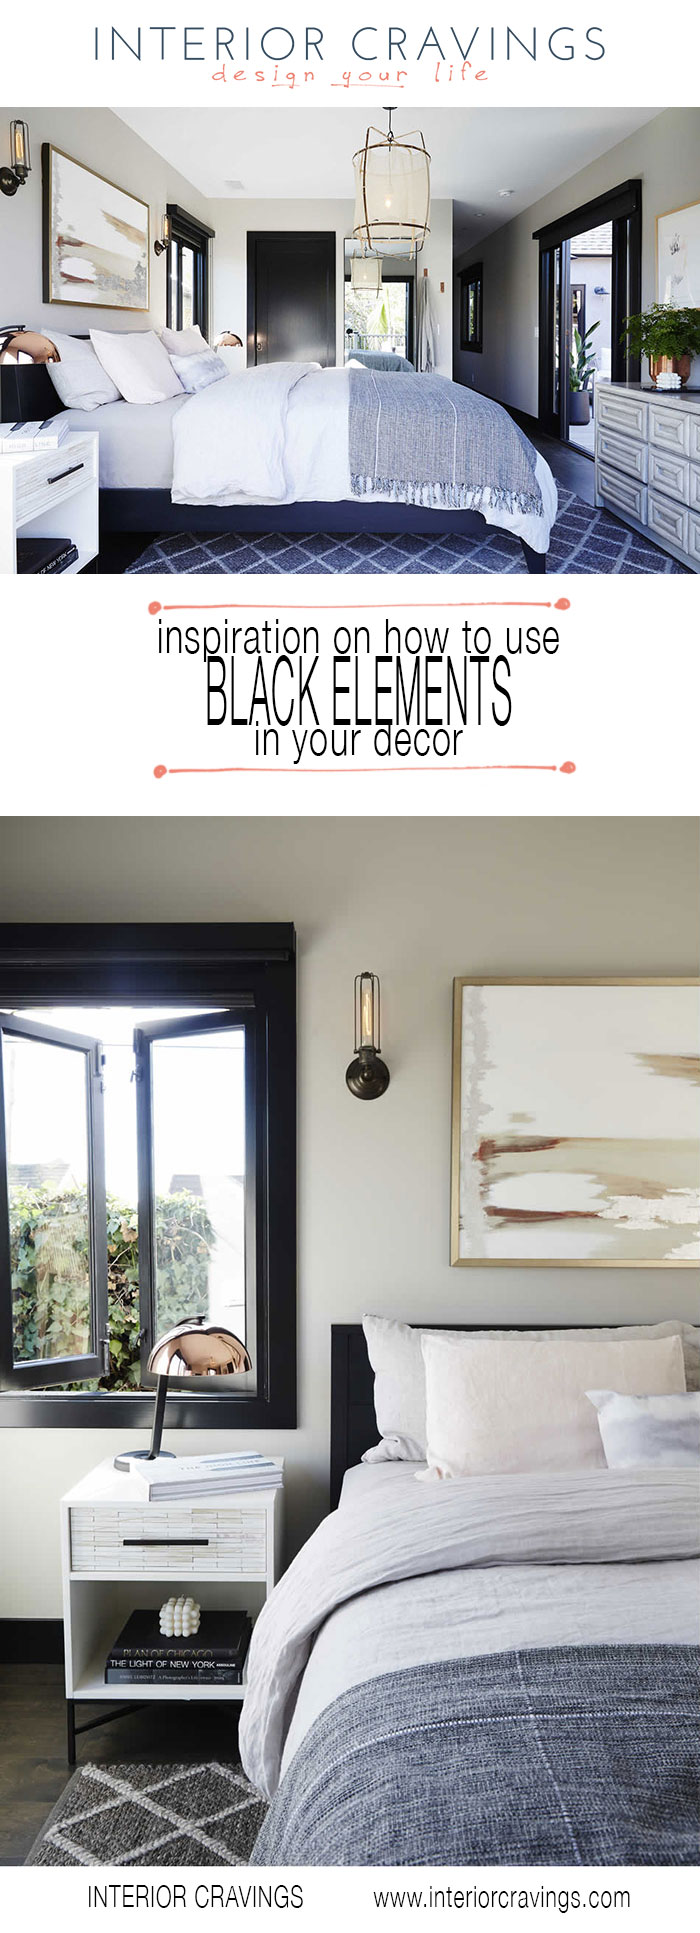 INSPIRATION ON HOW TO USE BLACK ELEMENTS IN YOUR DECOR ...